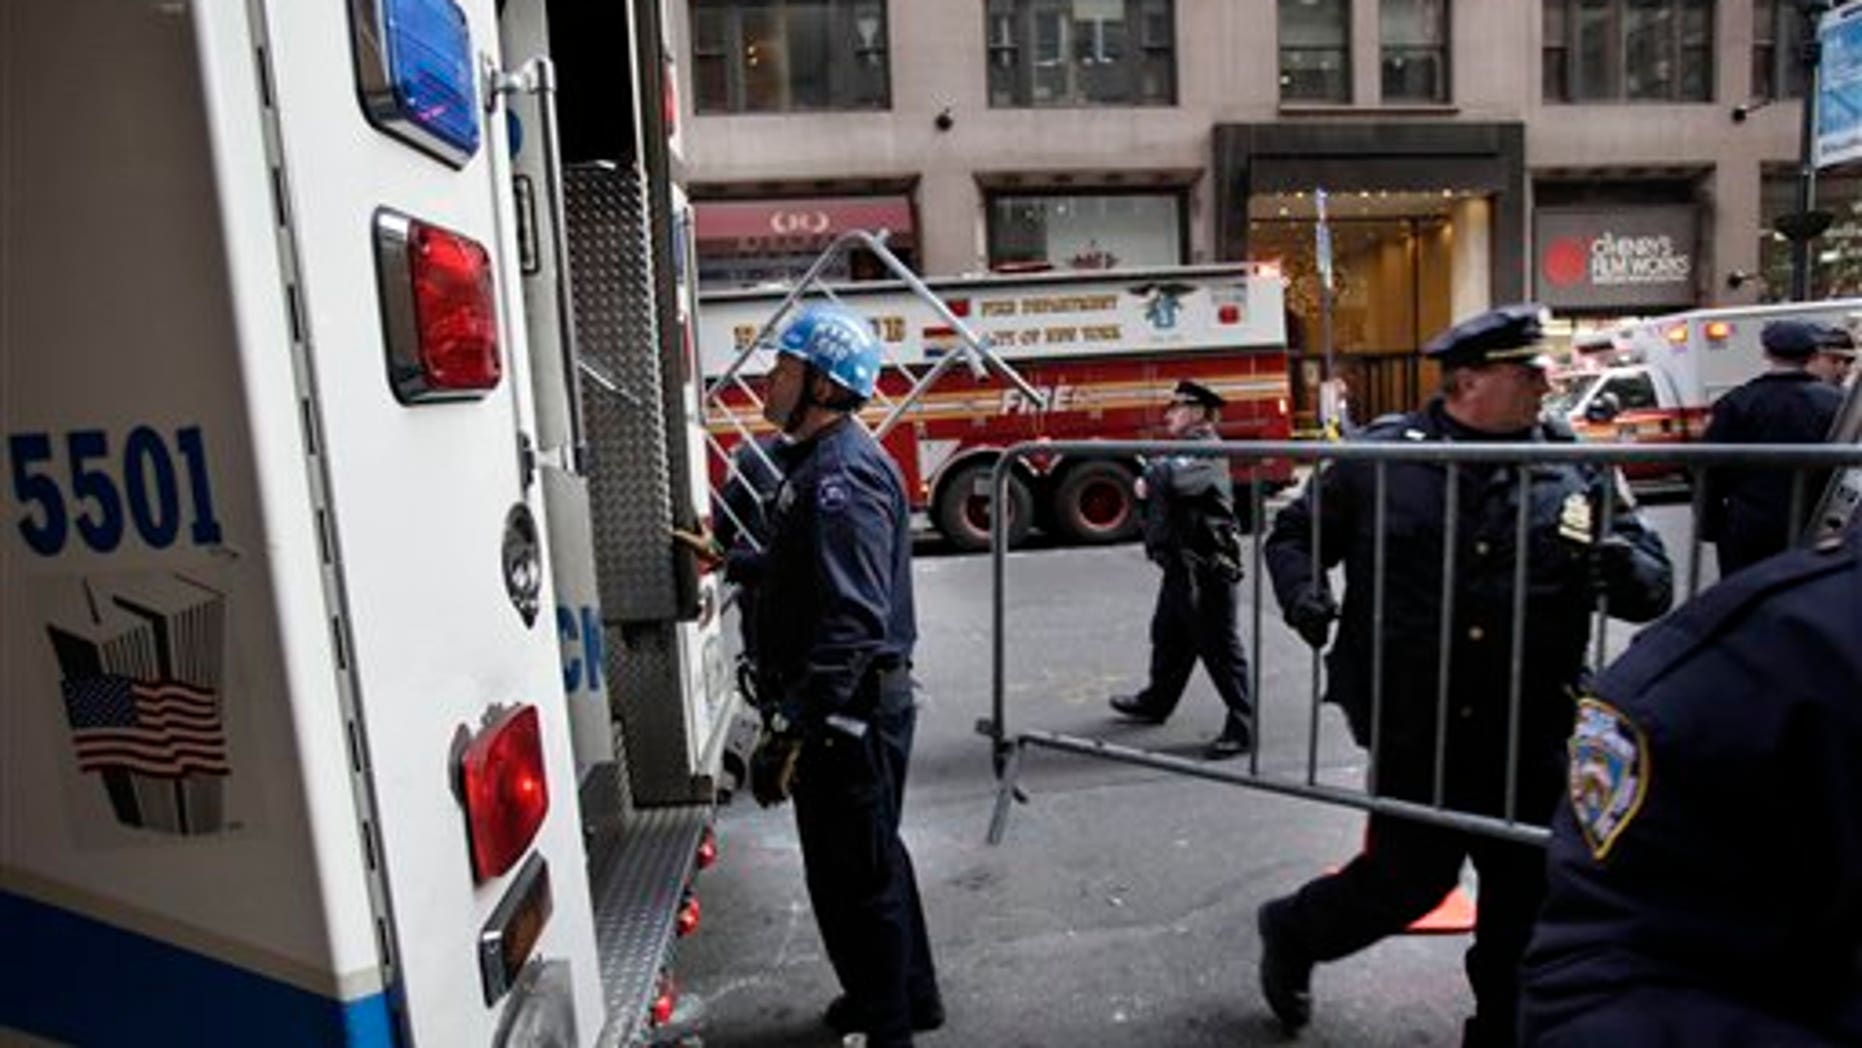 Dec. 14: Emergency personnel gather outside of a building where there was an elevator accident in New York. A woman was killed when her foot or leg became caught in an elevator's closing doors, New York City fire officials said Wednesday.